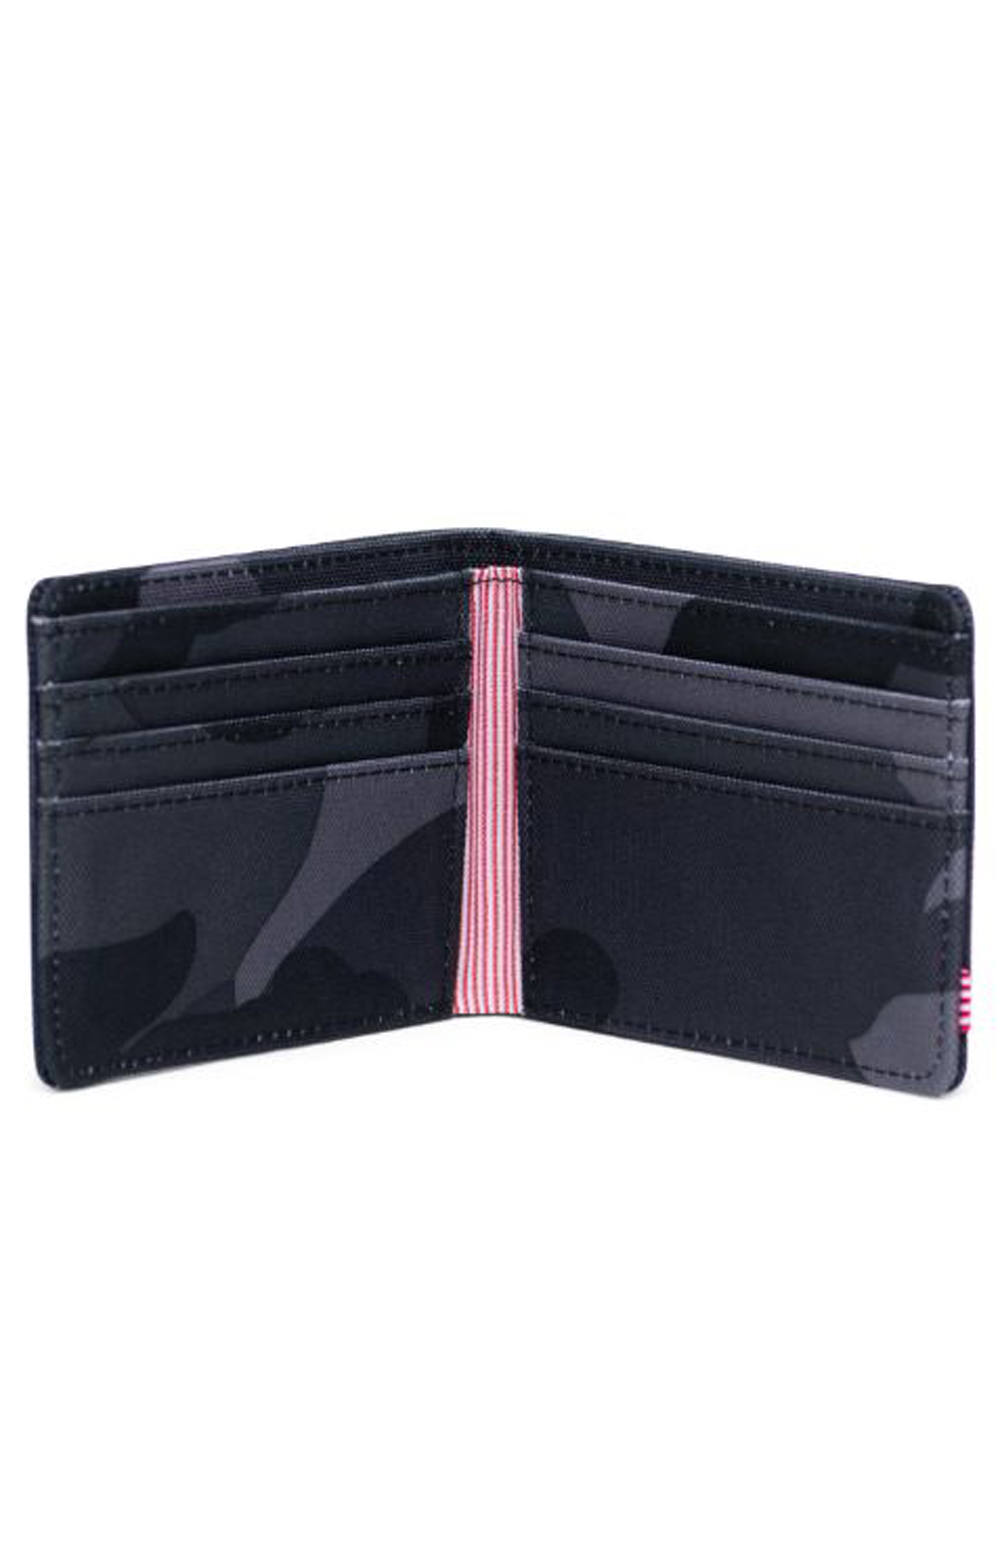 Roy Wallet - Night Camo 3